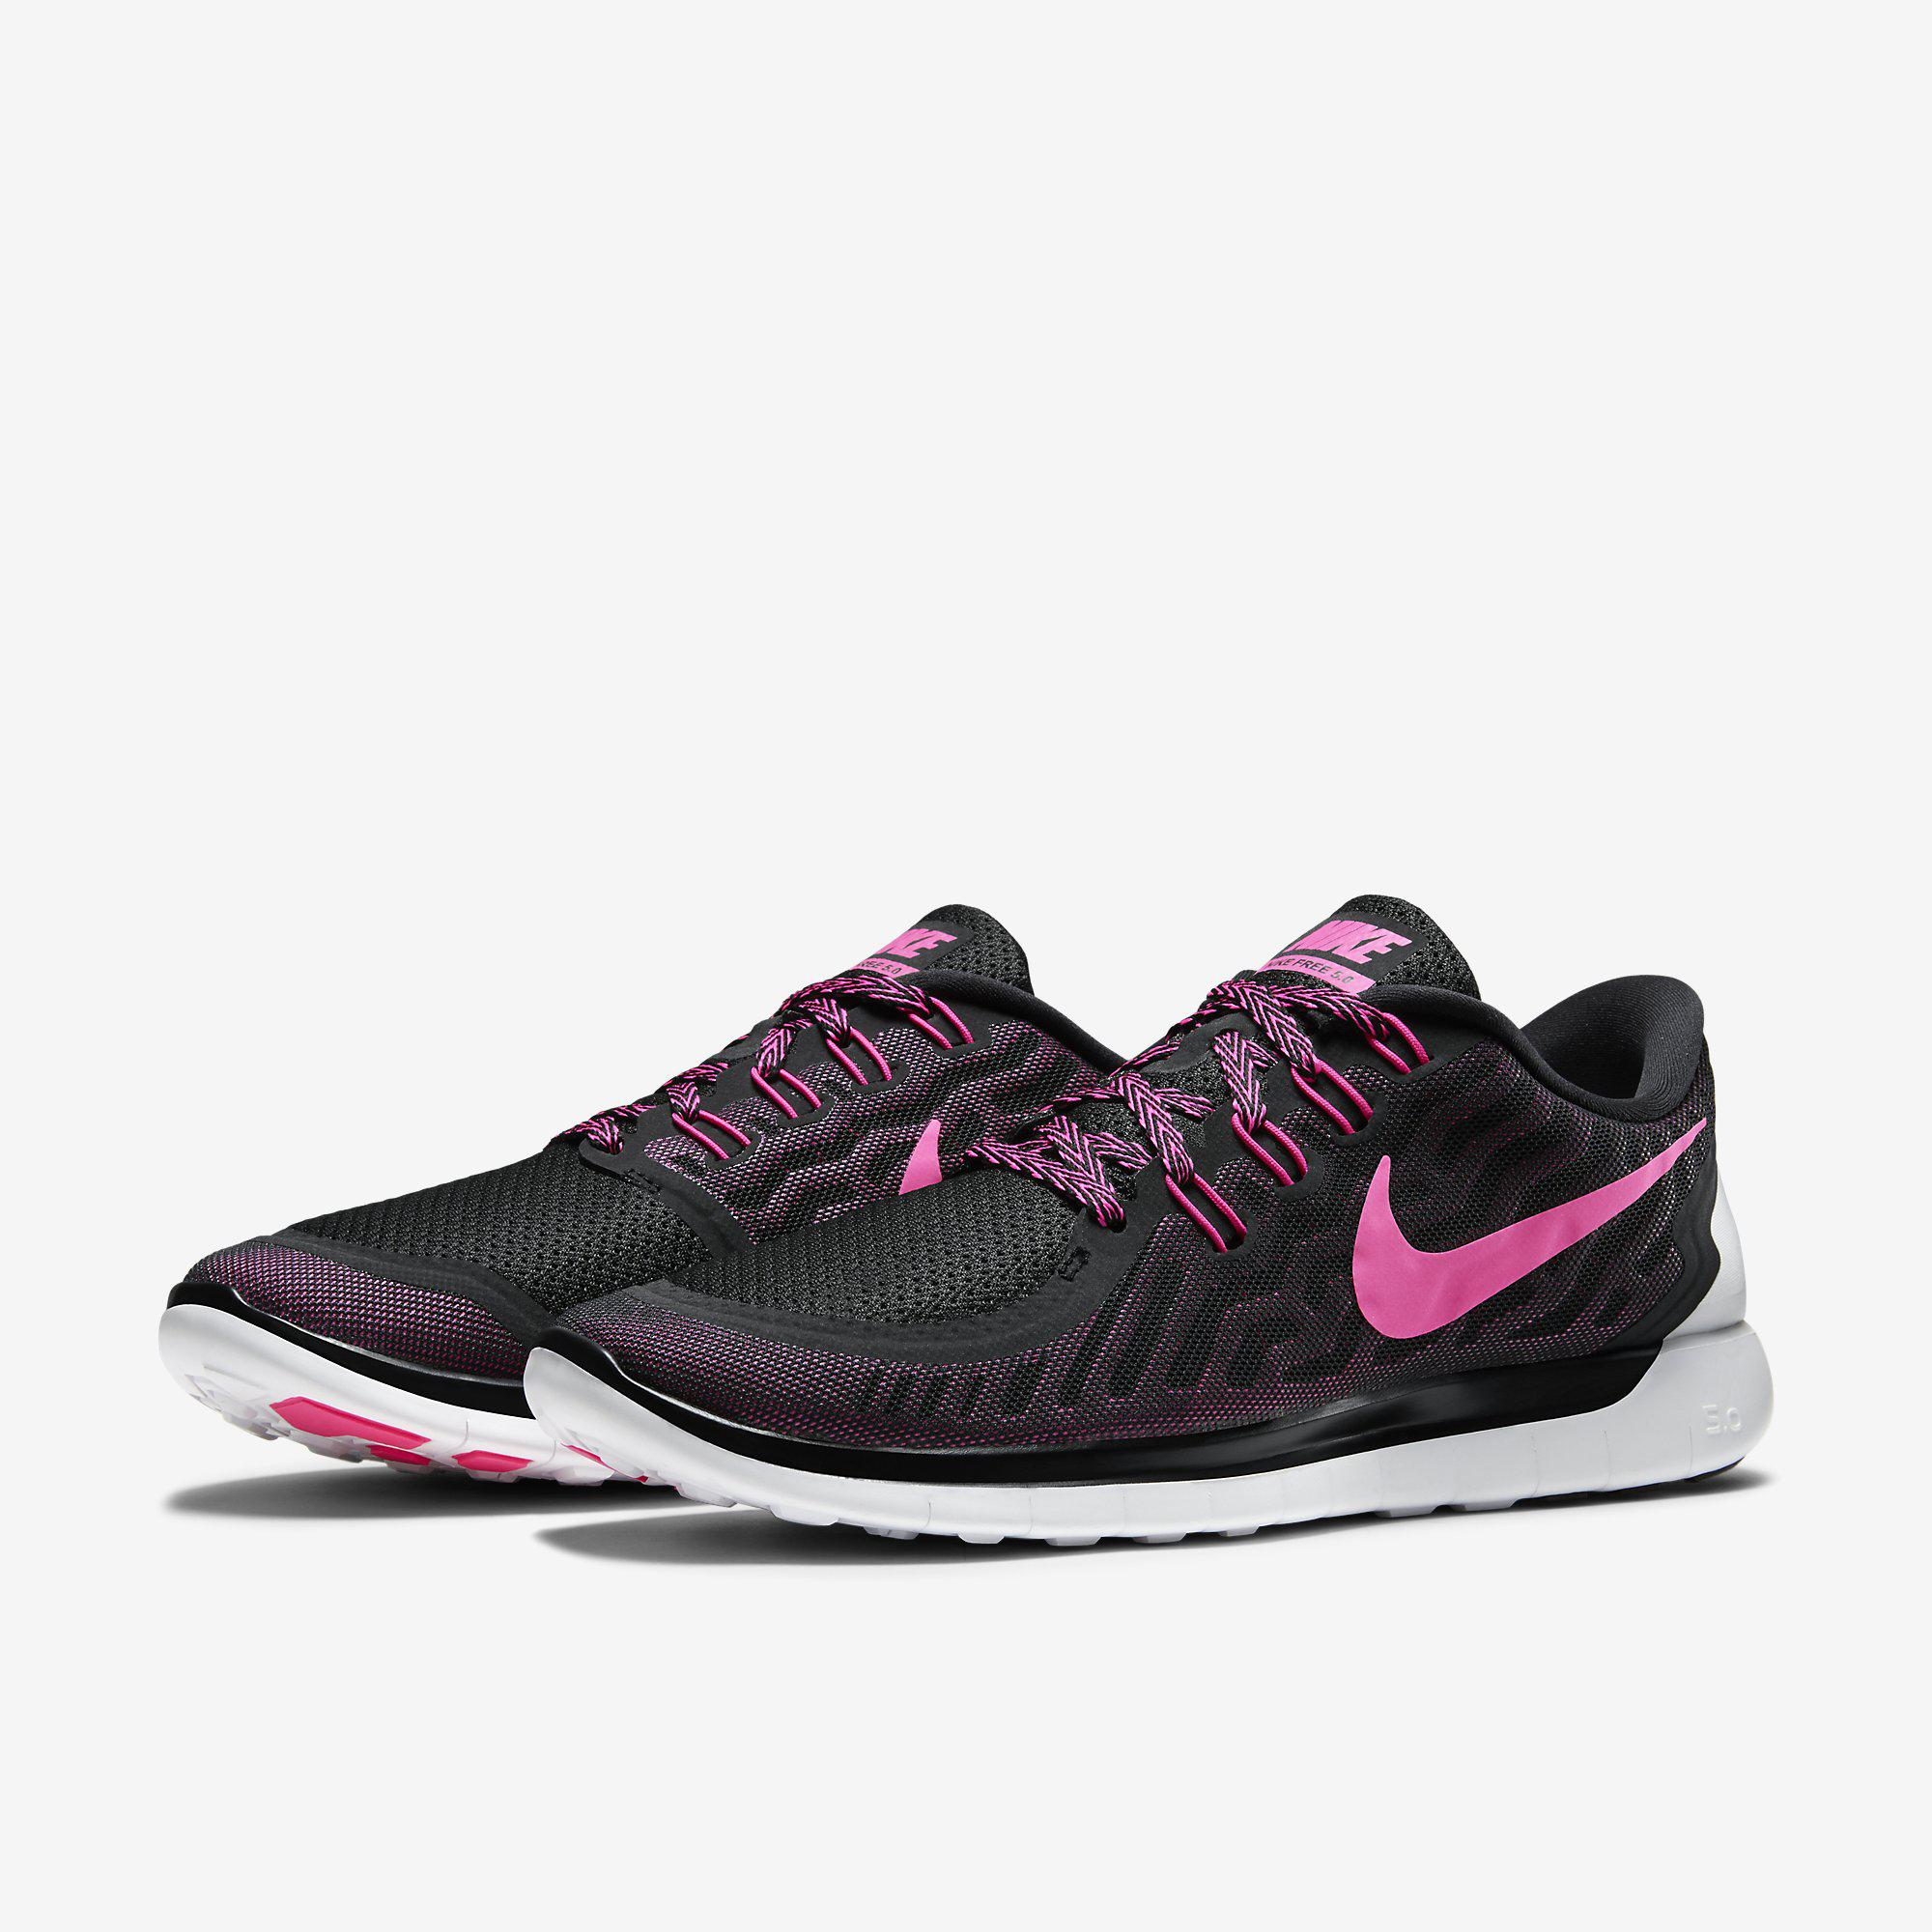 Nike Womens Free 5.0+ Running Shoes